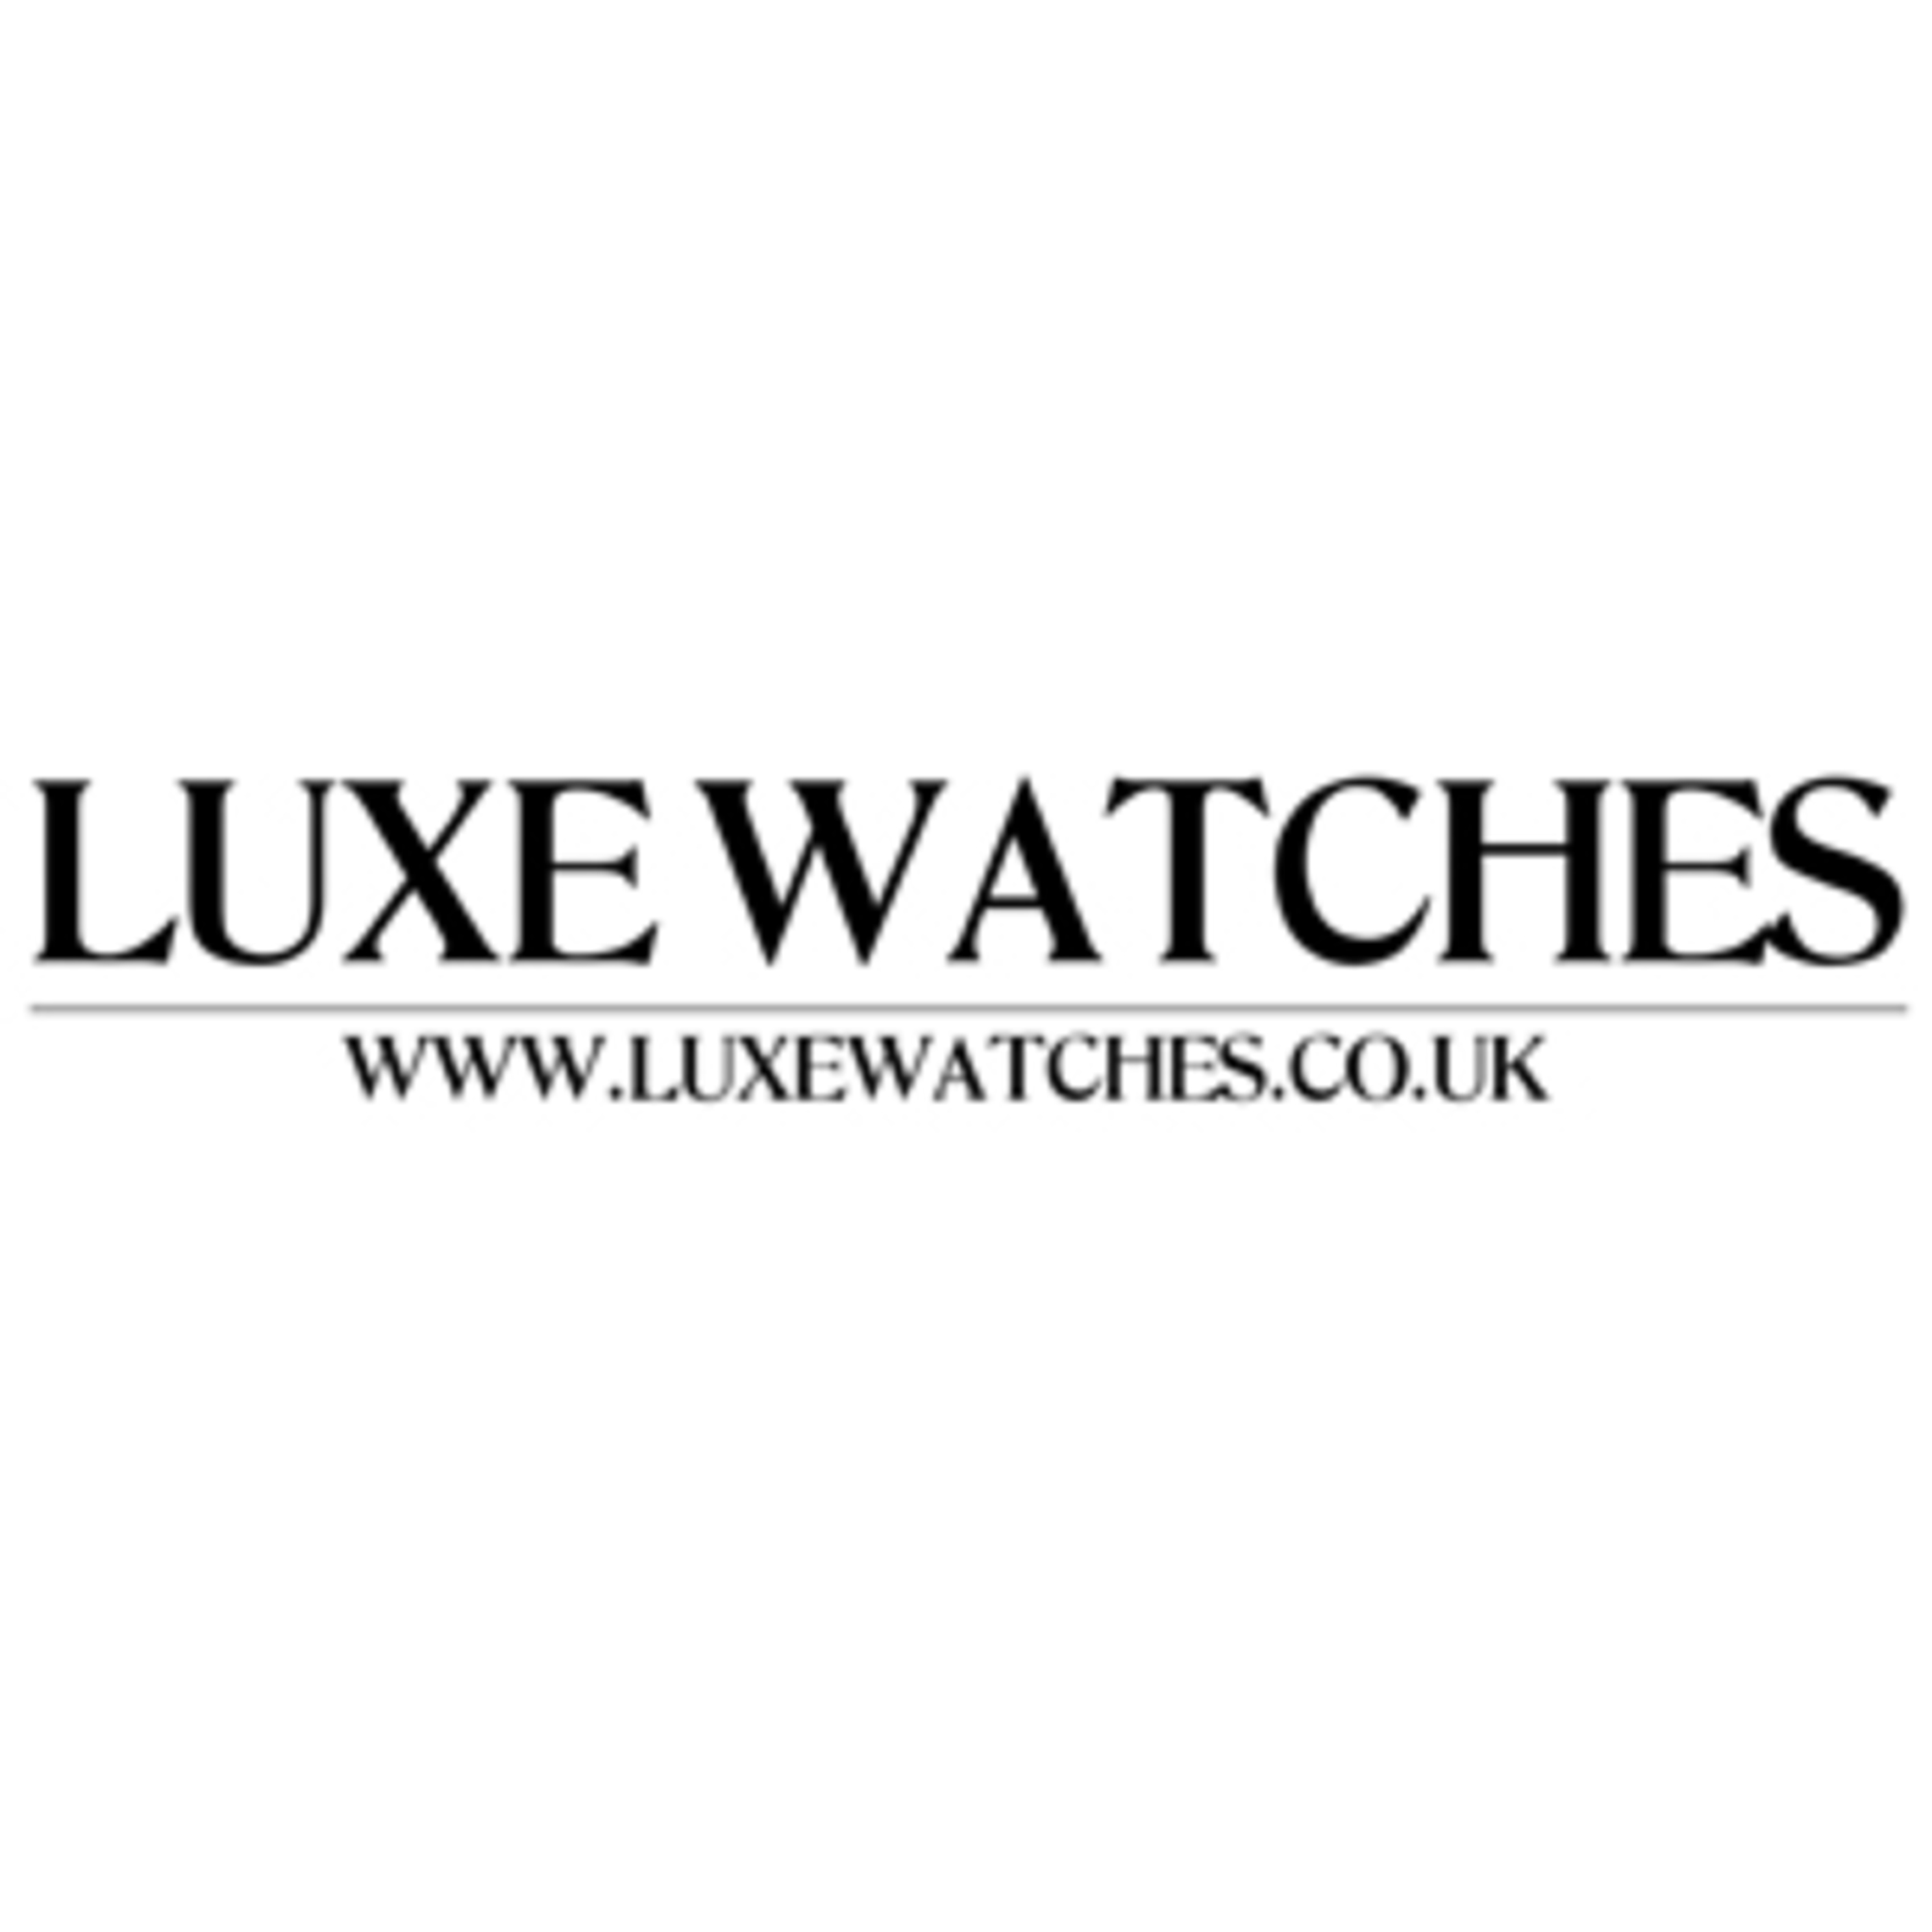 luxe watches- company logo